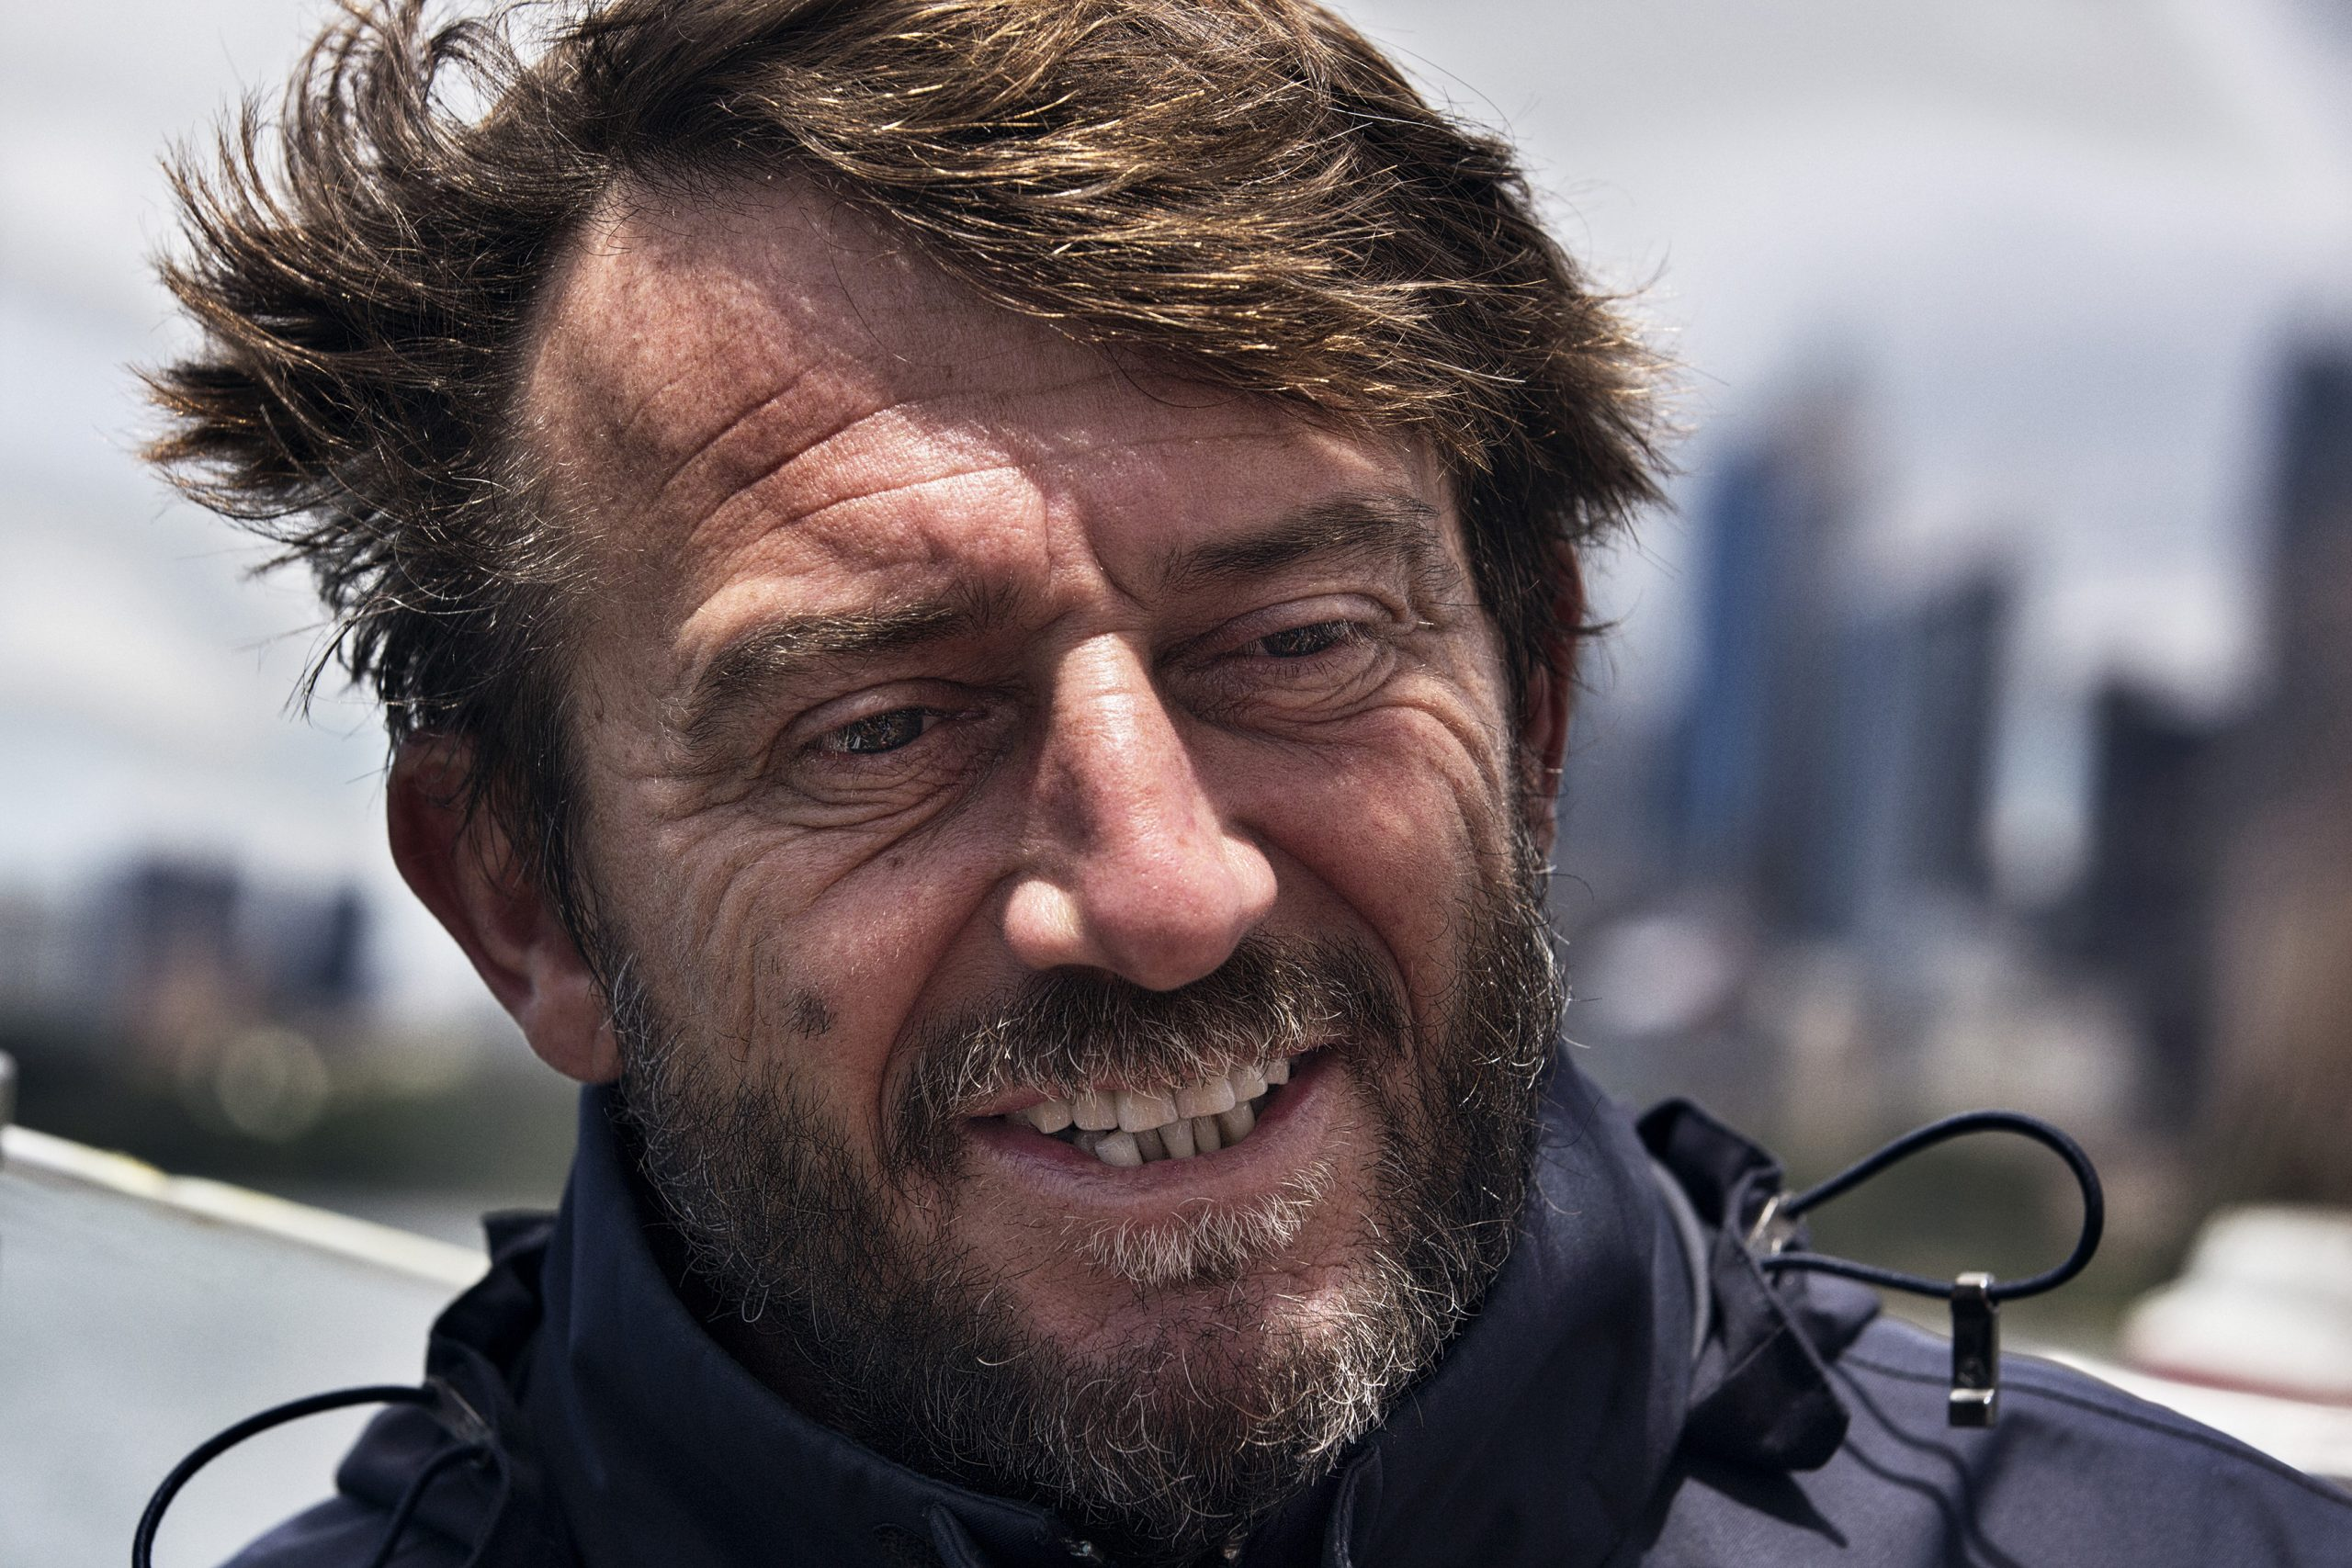 Giovanni Soldini has over 20 years experience in ocean racing and is ready to take on the Rolex Sydney Hobart Yacht Race for the first time. Photo Andrea Francolini.